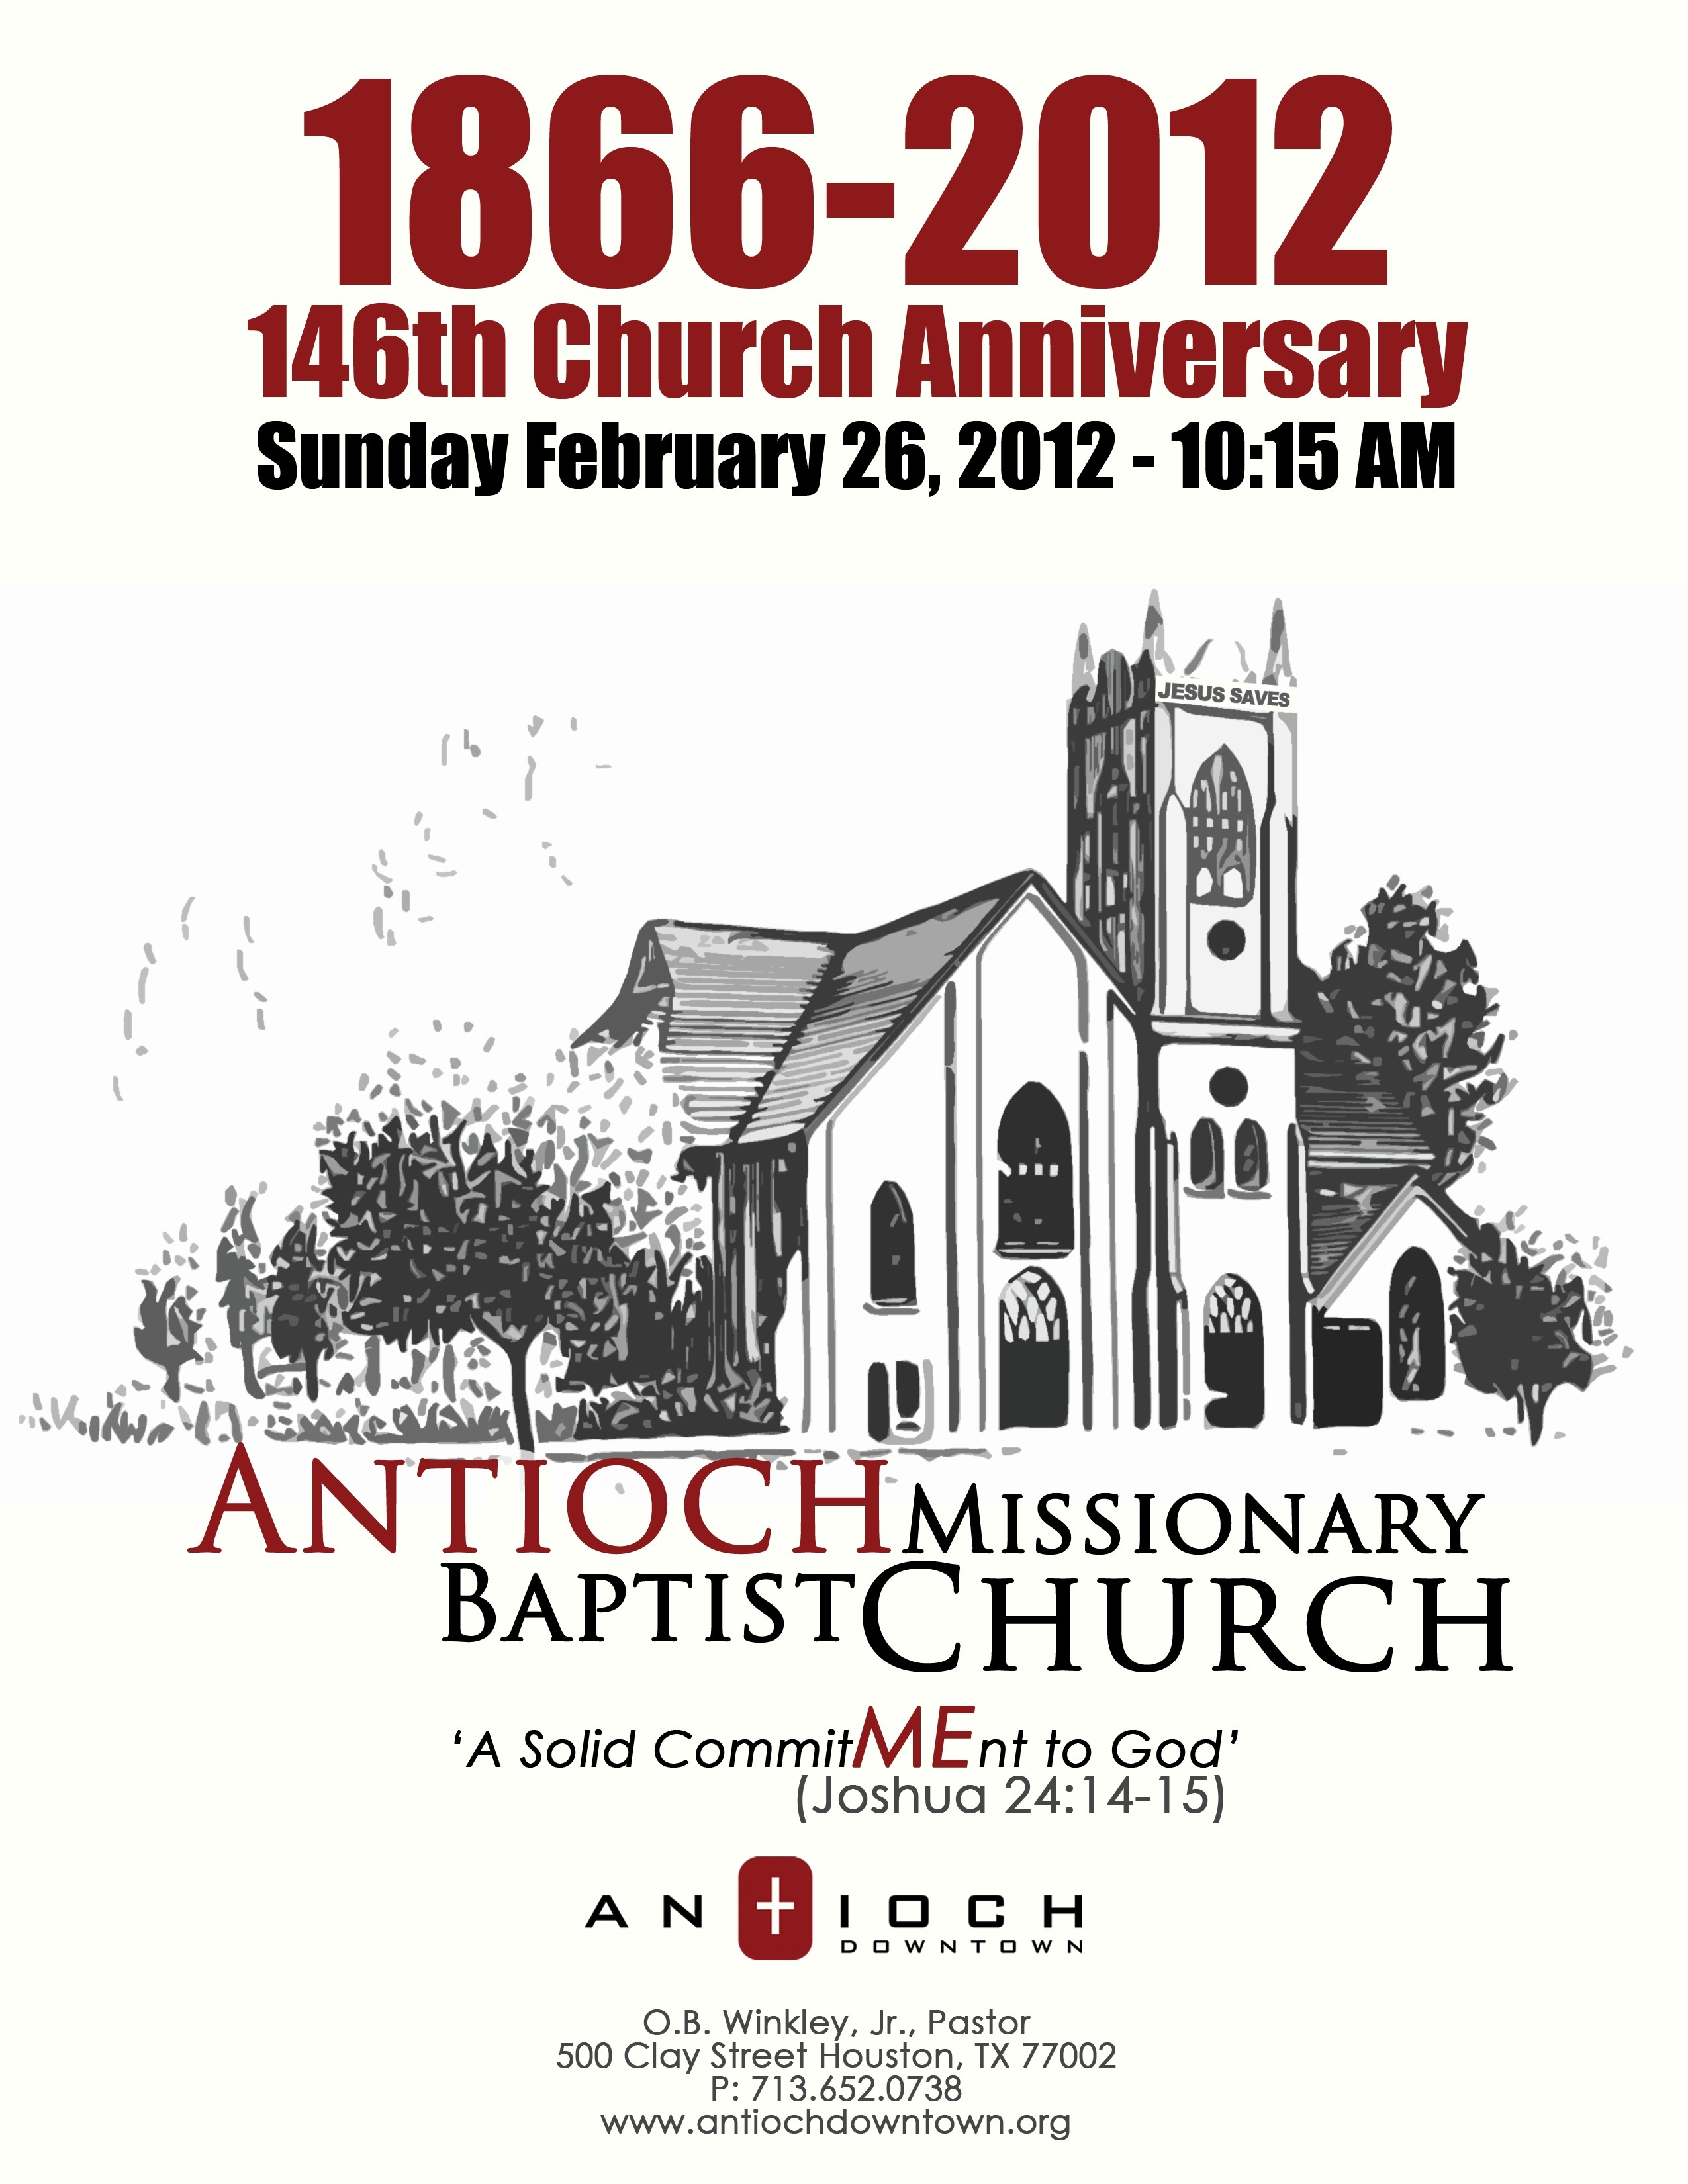 146th Church Anniversary Celebration